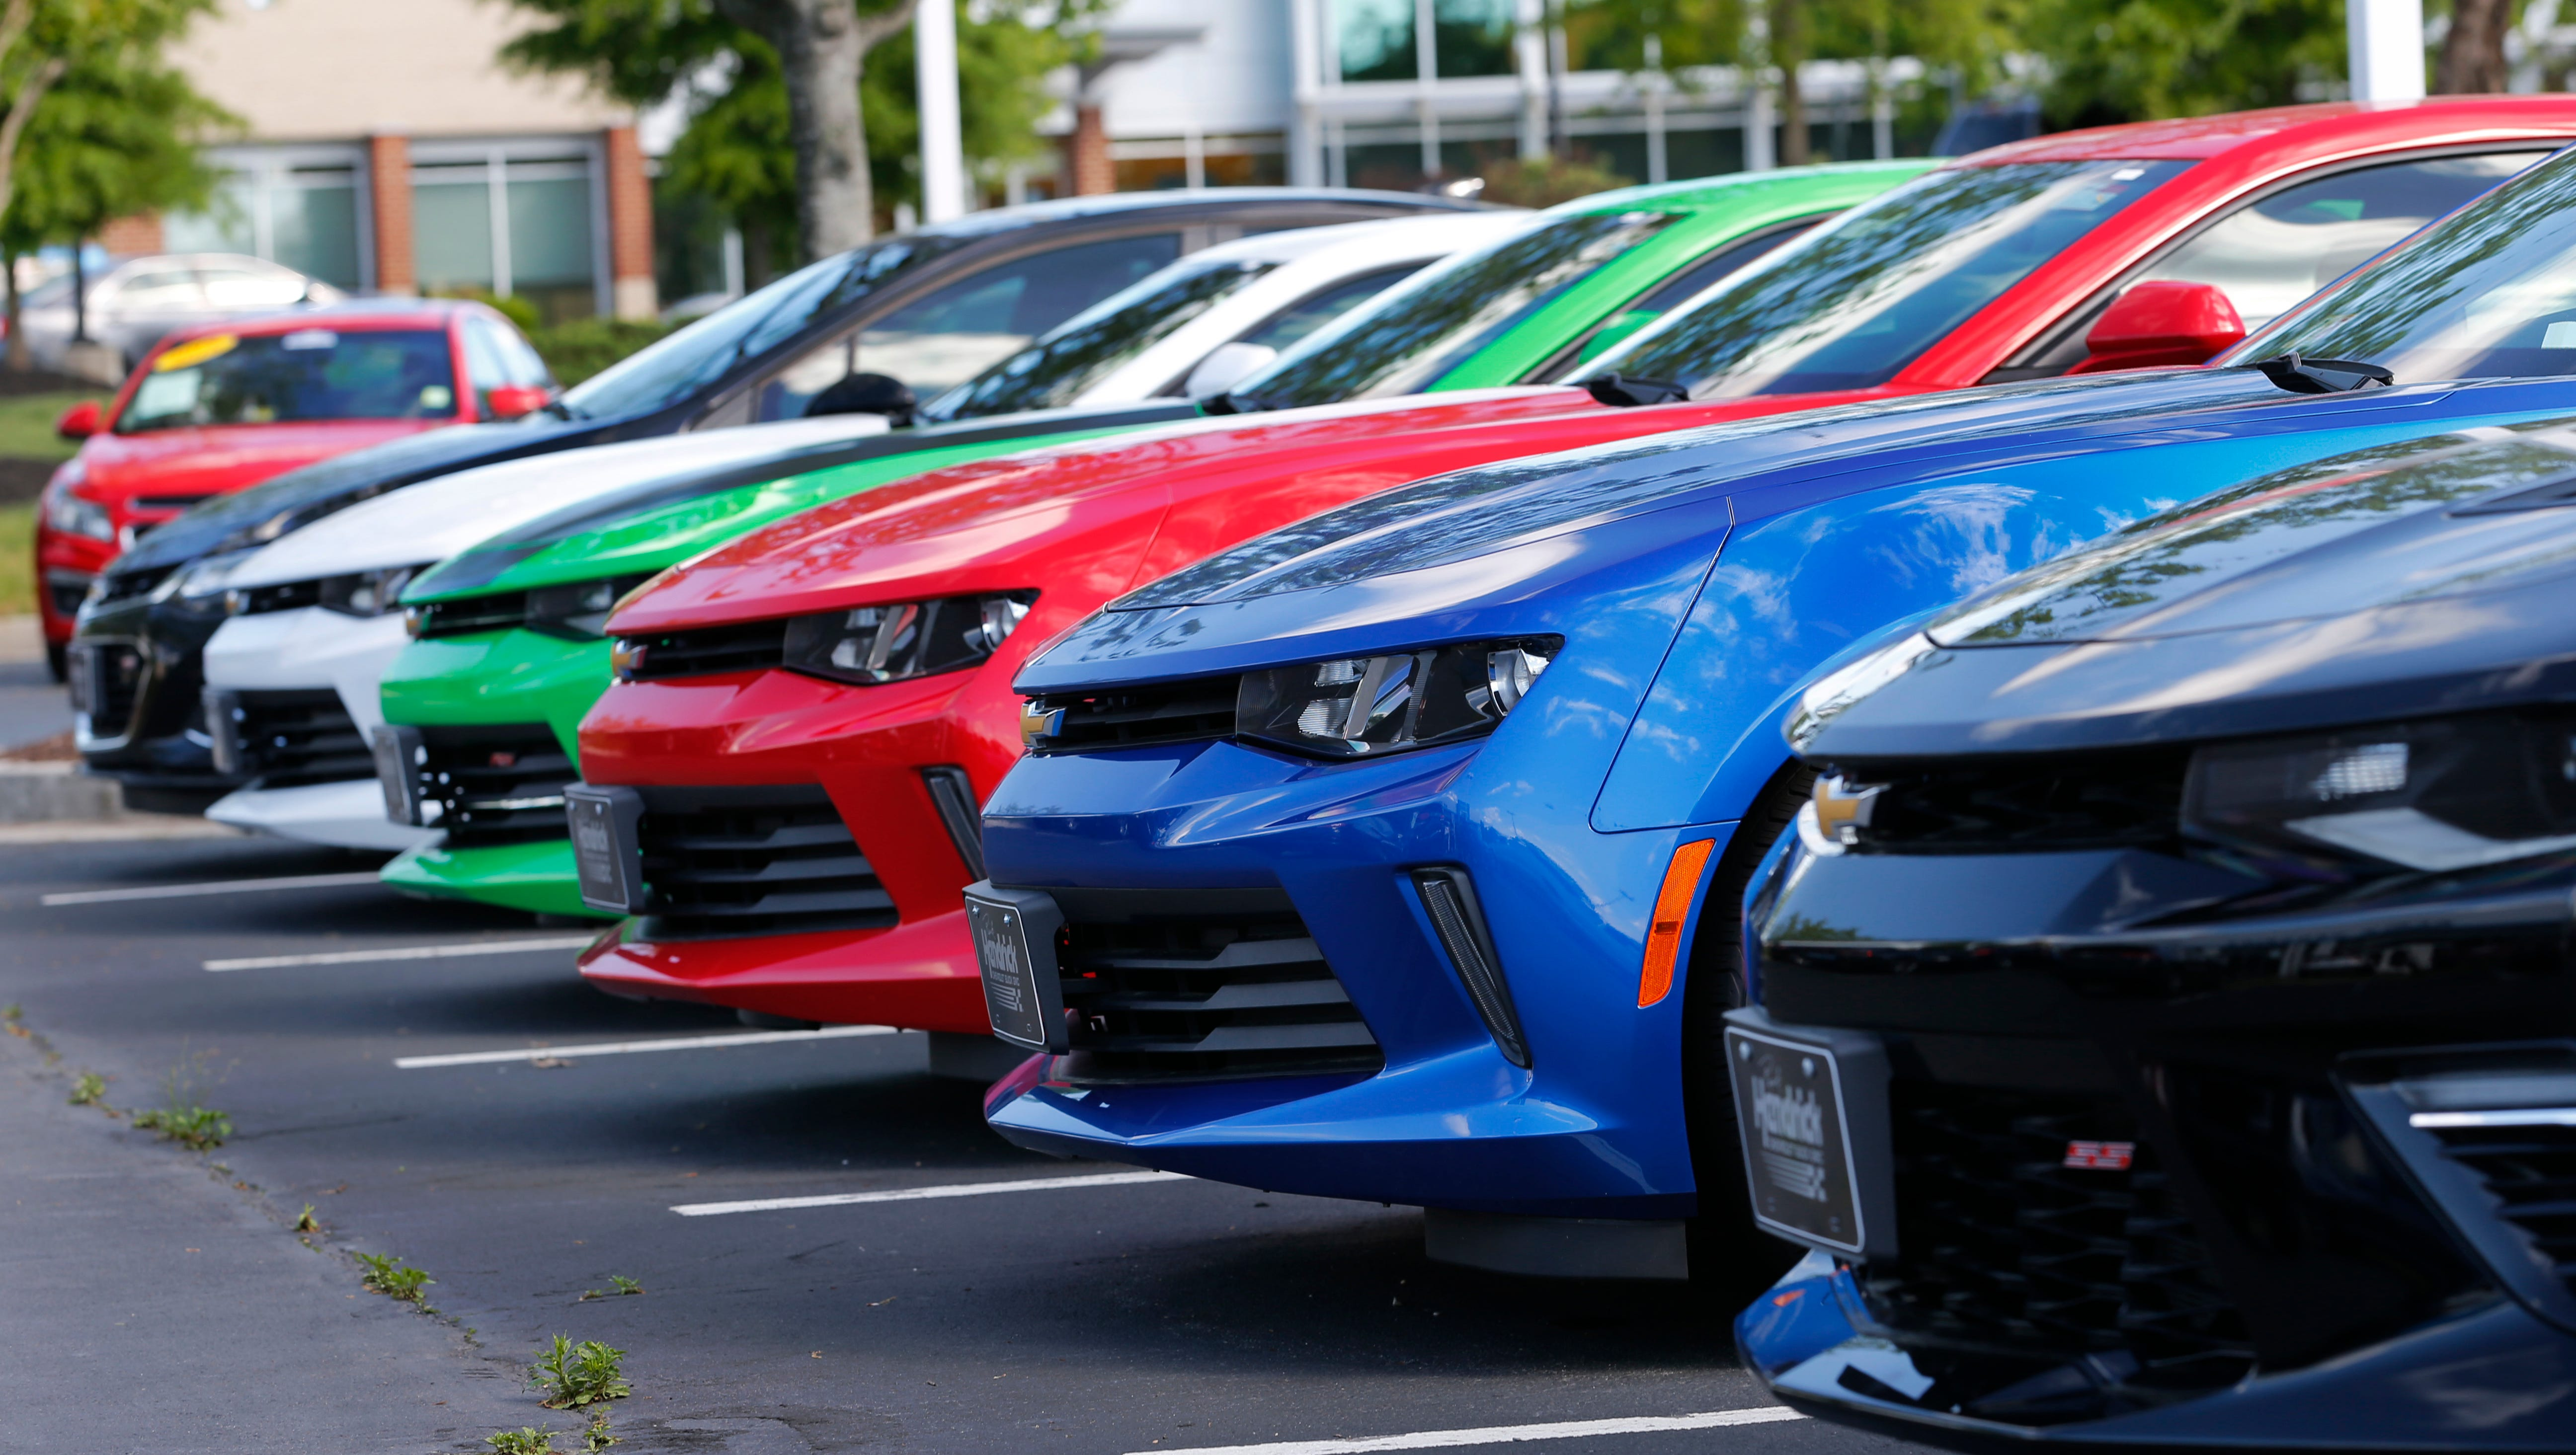 How To Get Out Of A Car Lease Without Penalty >> End Your Car Lease Without Getting Dinged